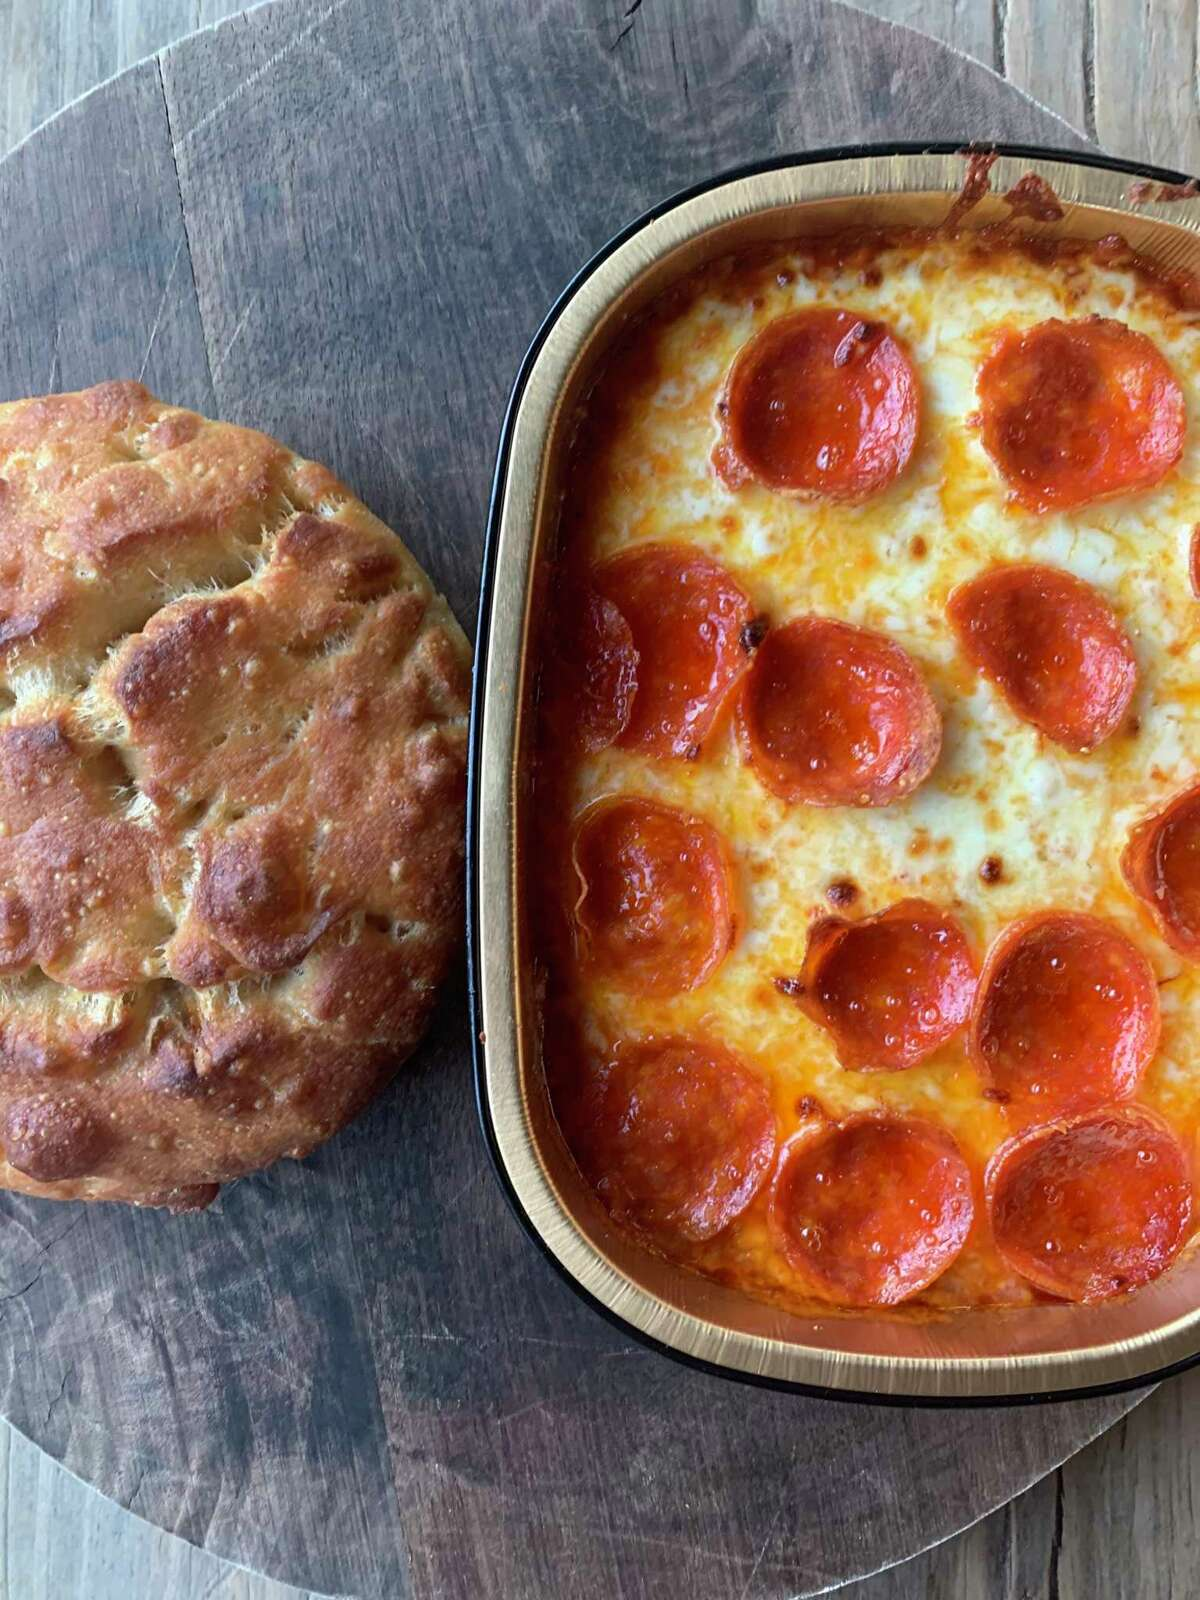 Pepperoni Pizza Dip is served with house-made focaccia at The Hay Merchant.